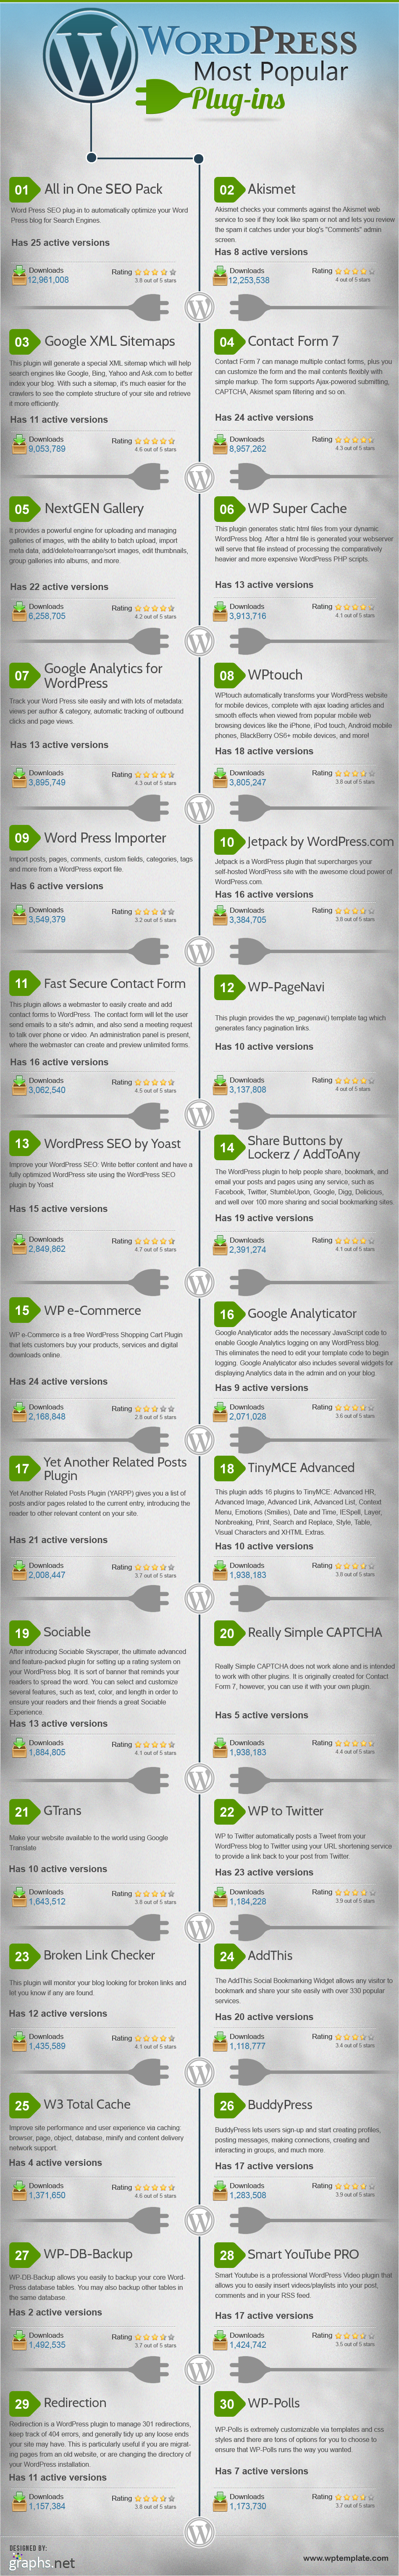 30 Most Popular Wordpress Plugins [Infographic] | inspirationfeed.com